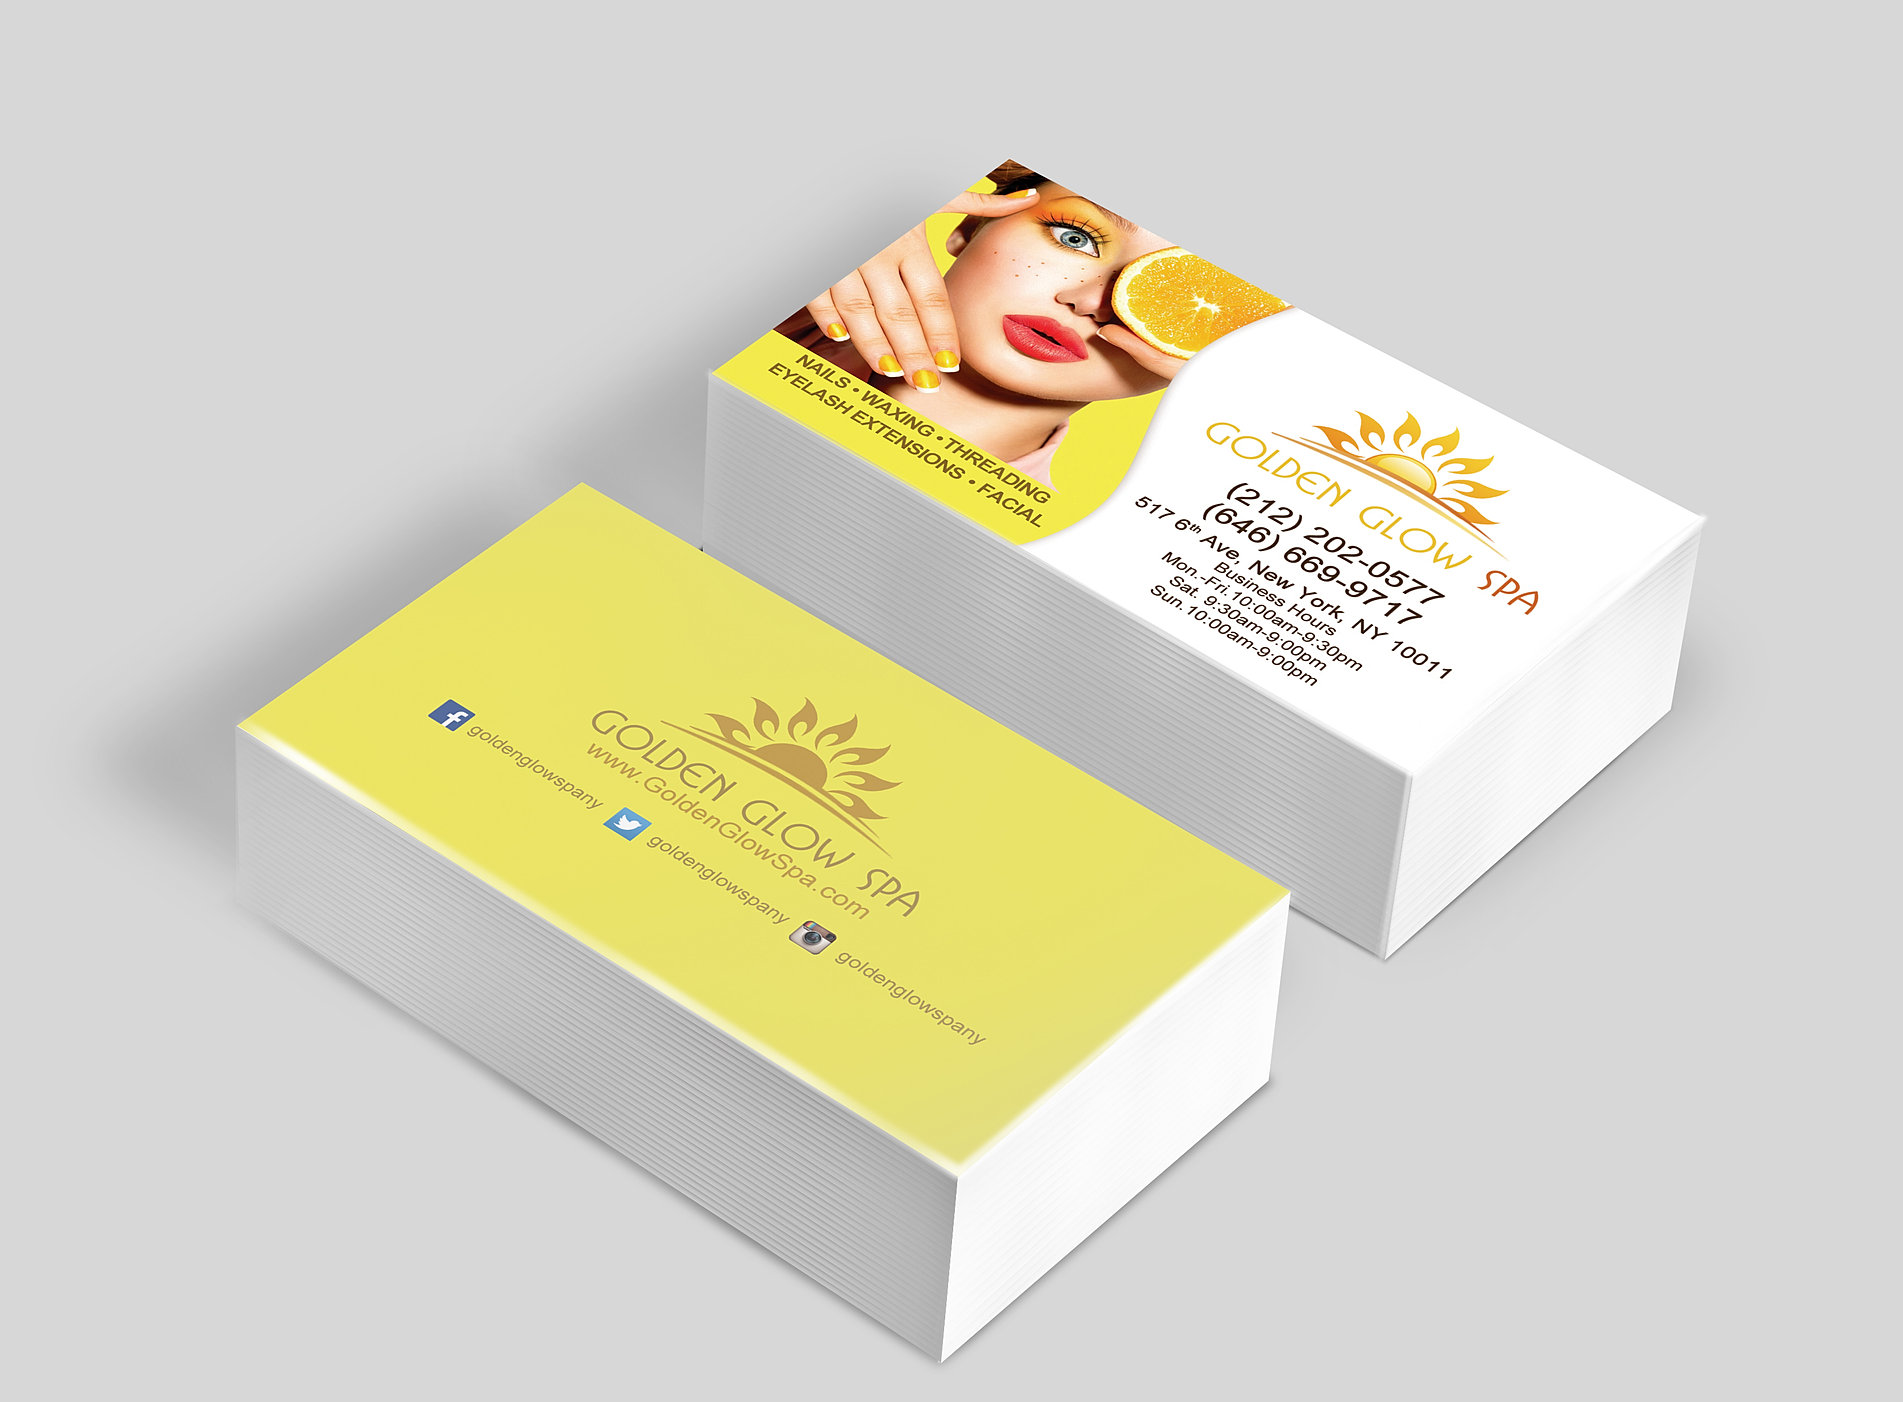 Design and print service in Albany New York